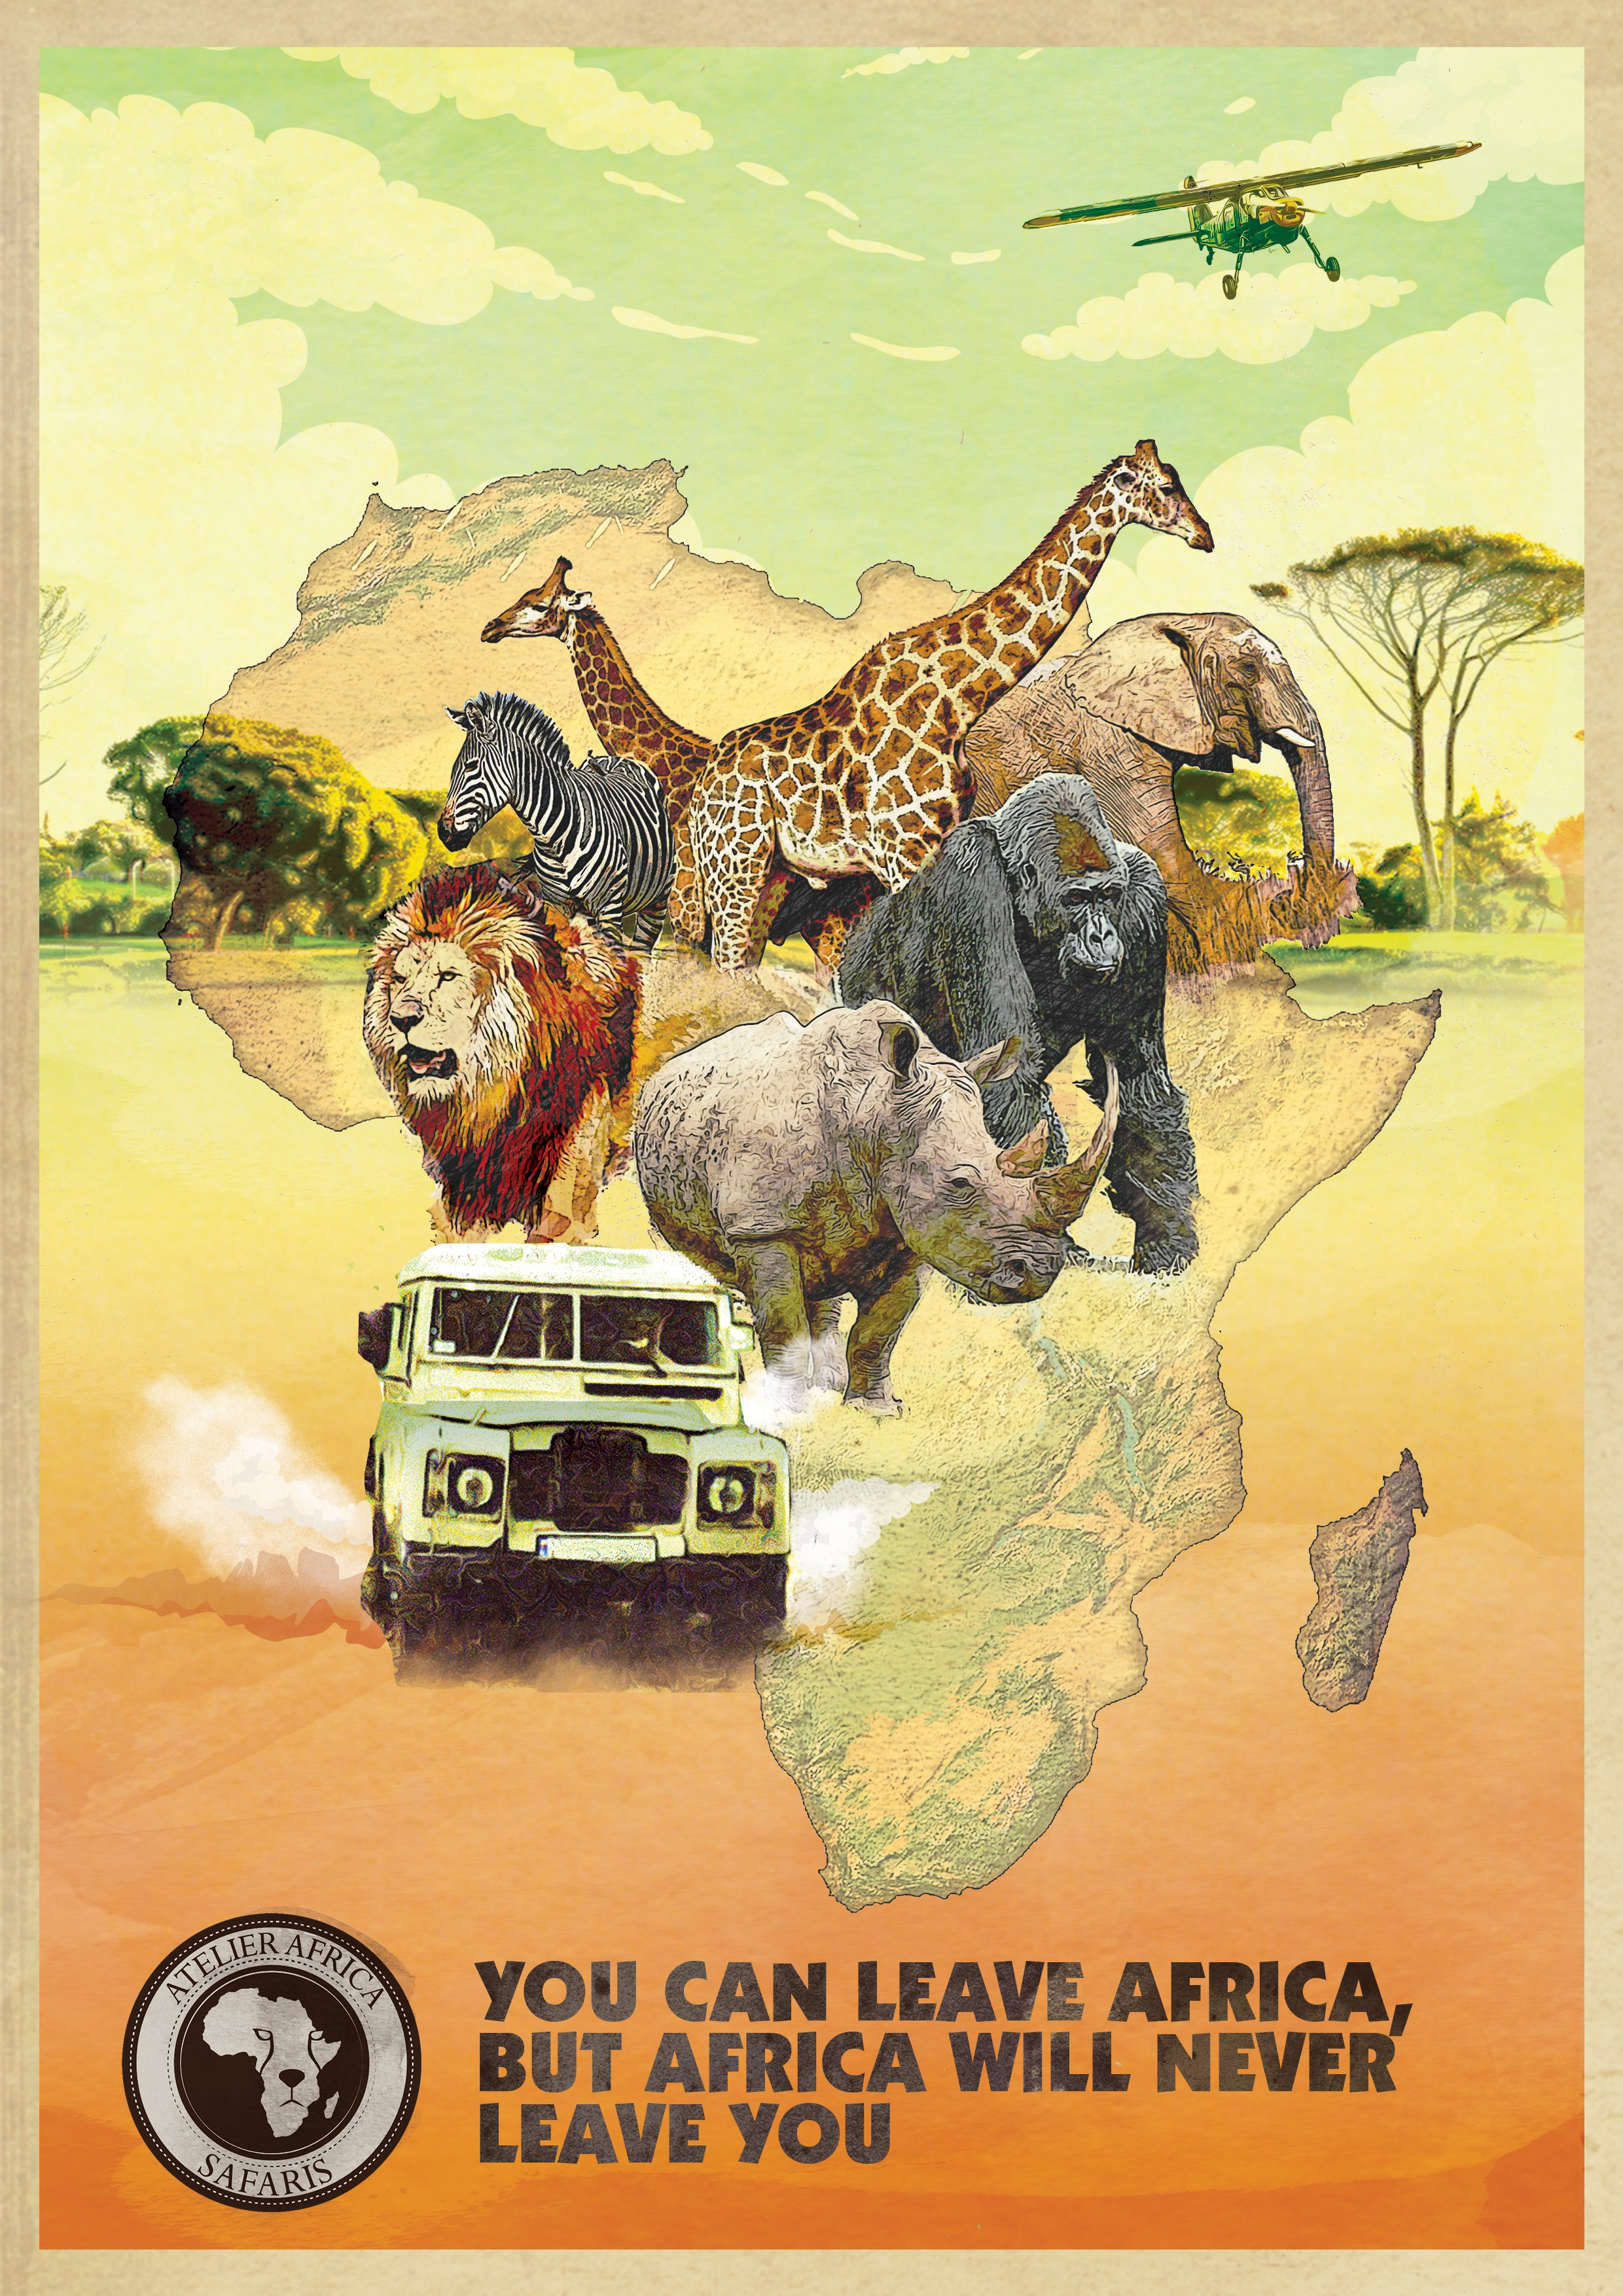 Desigs/Draw an old style Africa Safari poster/ad